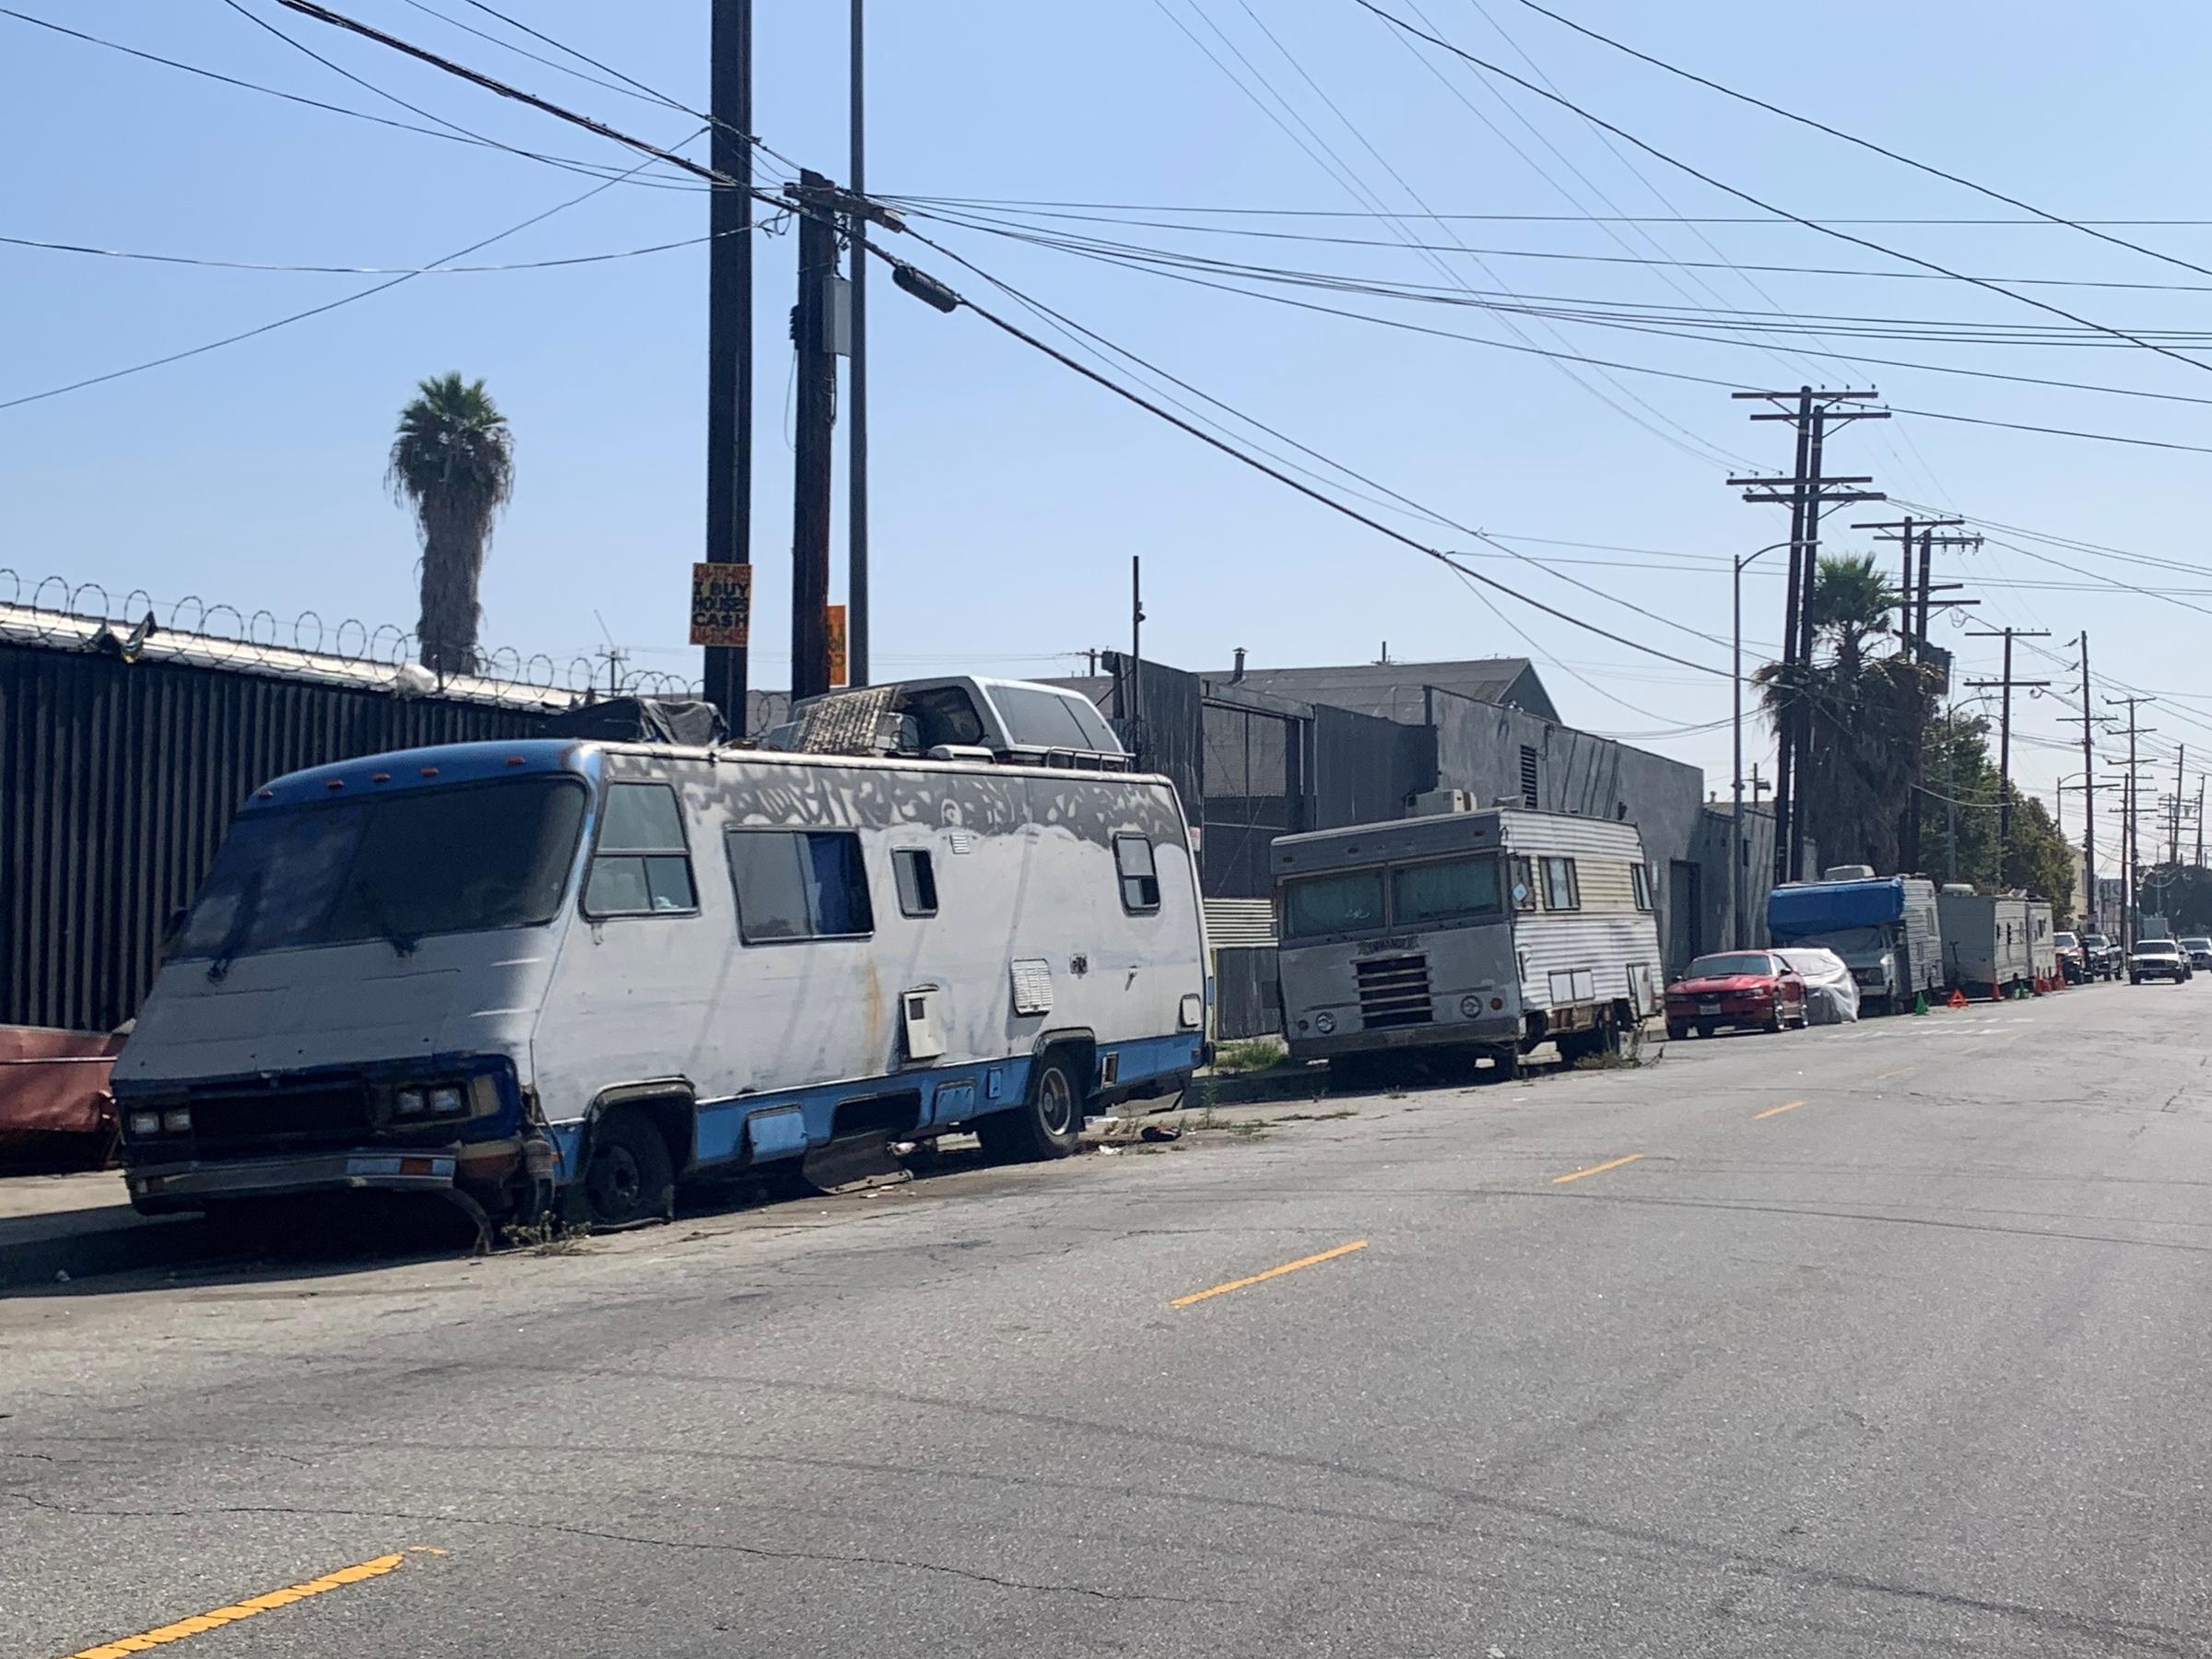 Amid Homelessness Crisis Los Angeles Restricts Living In Vehicles Kpcw